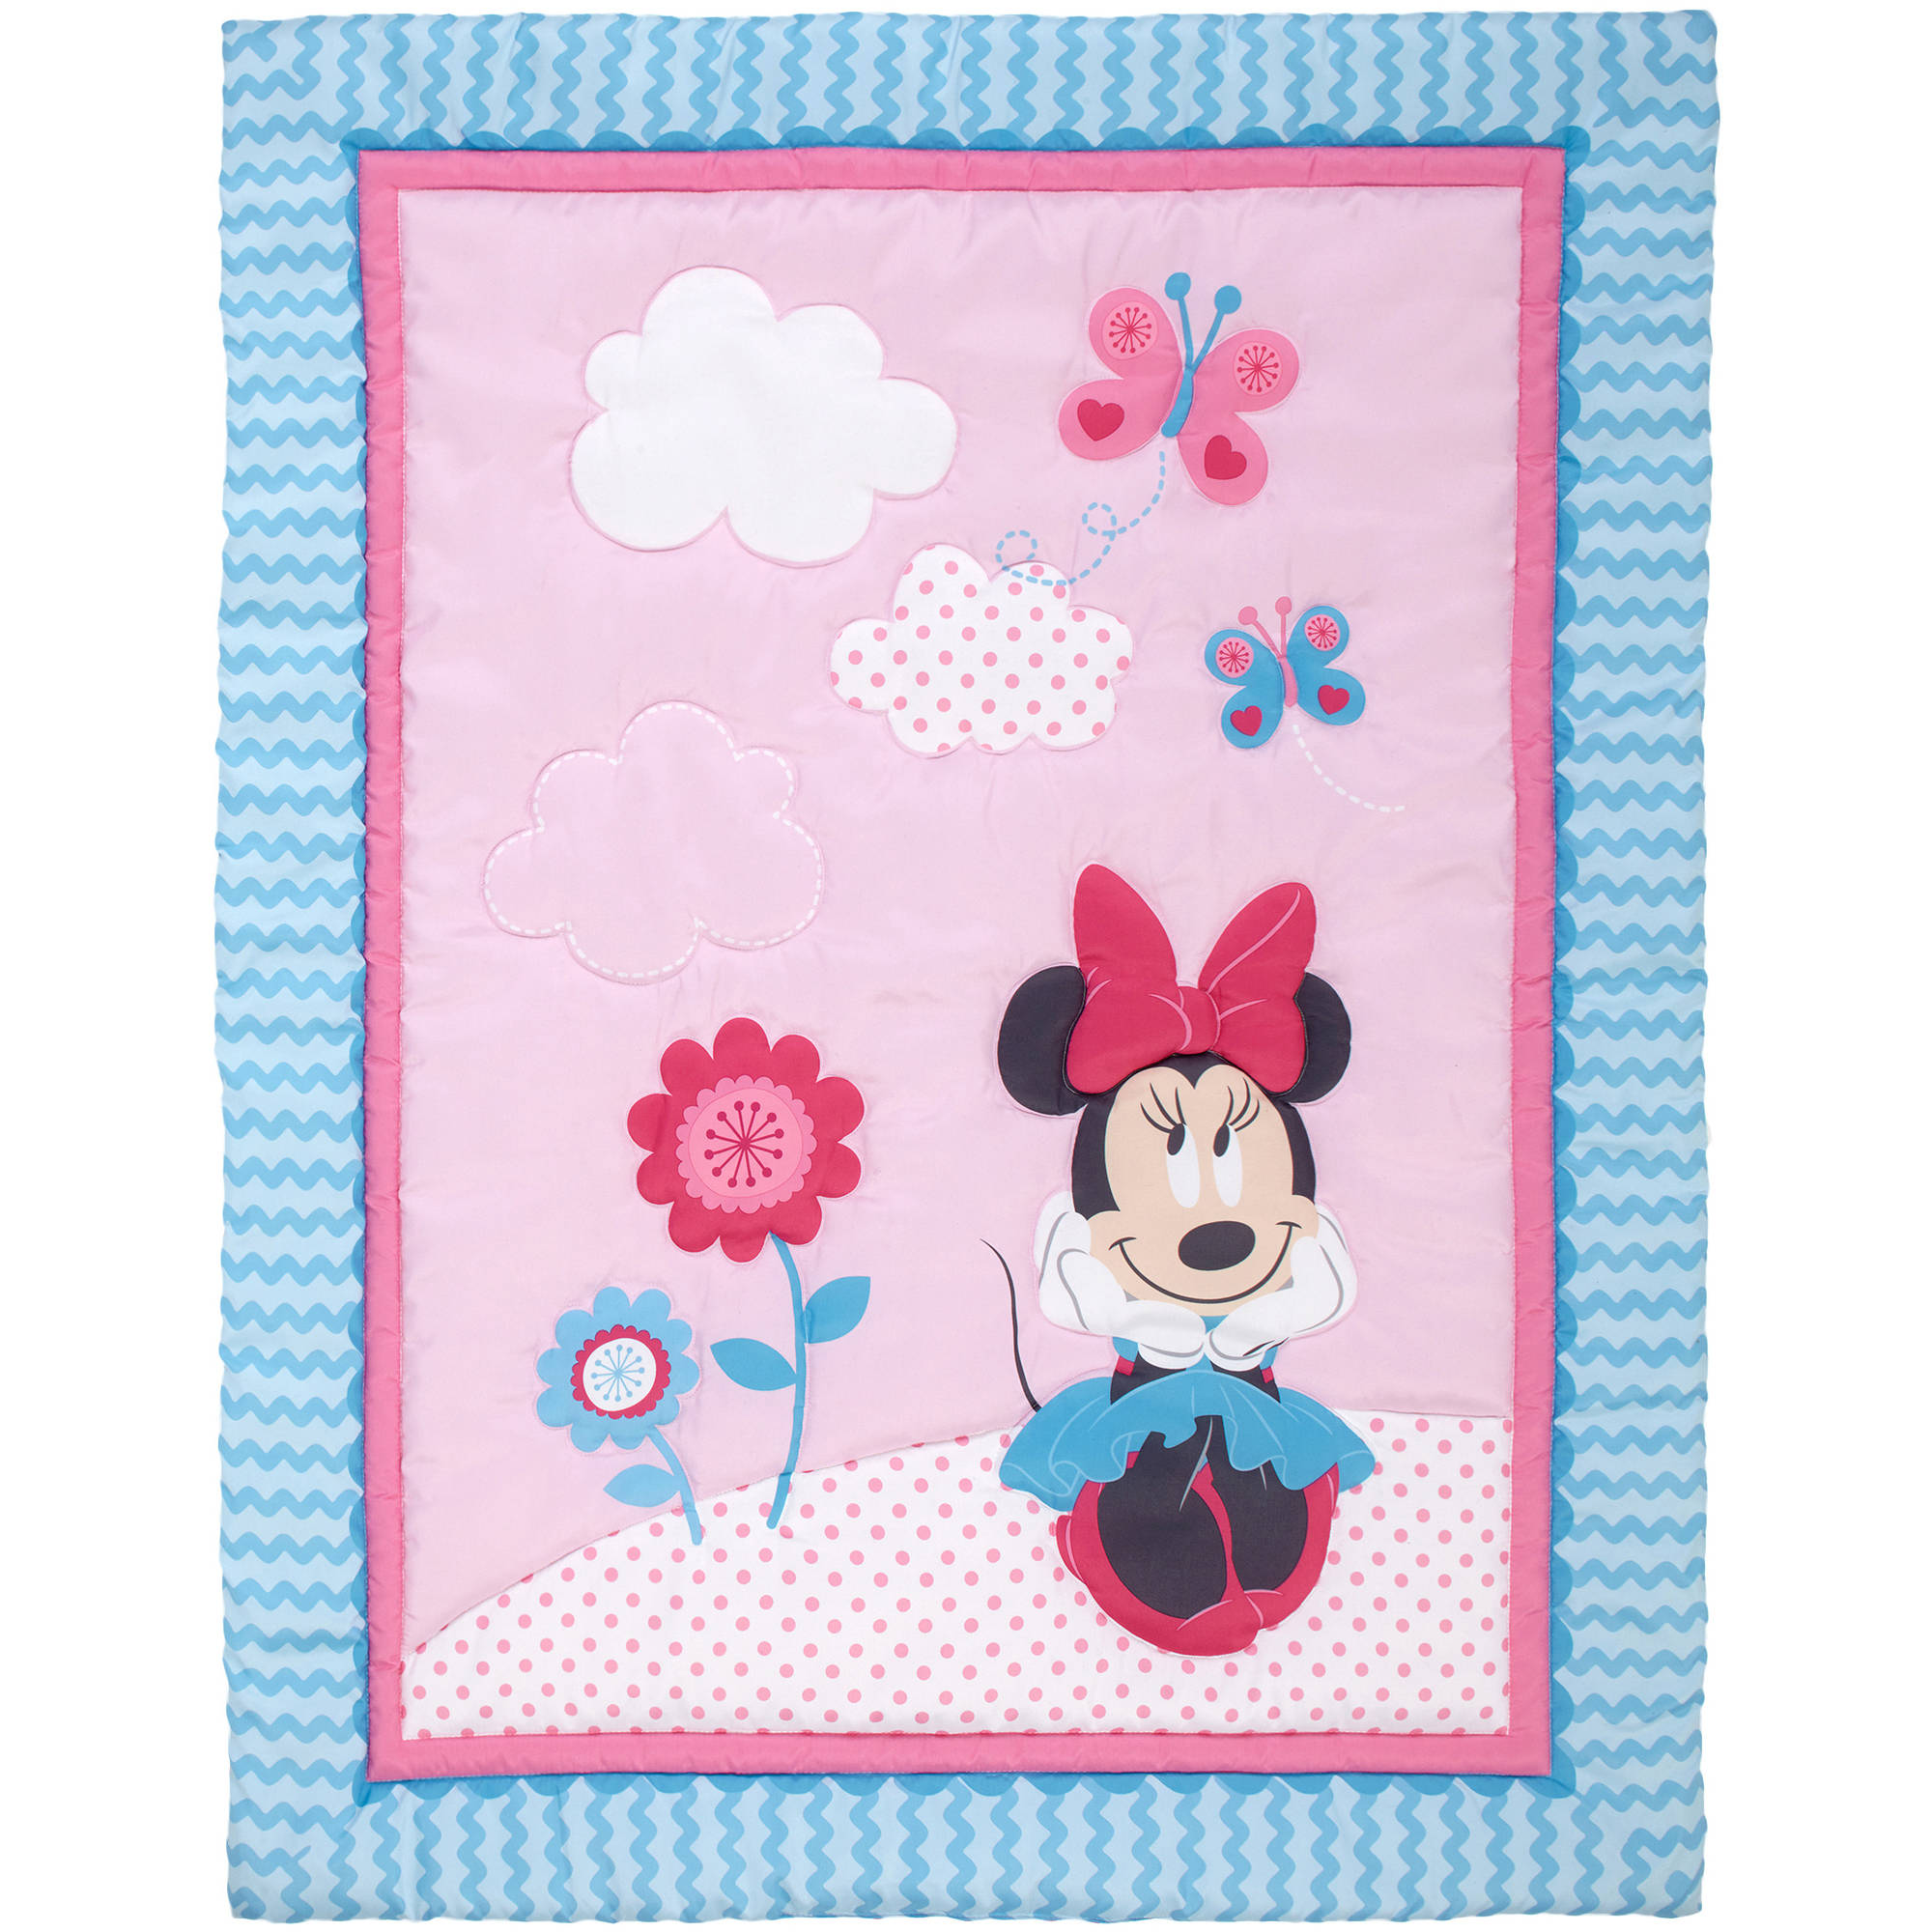 Disney Minnie Mouse Happy Day 4 Piece Crib Bedding Set - Walmart.com : minnie mouse cot quilt - Adamdwight.com